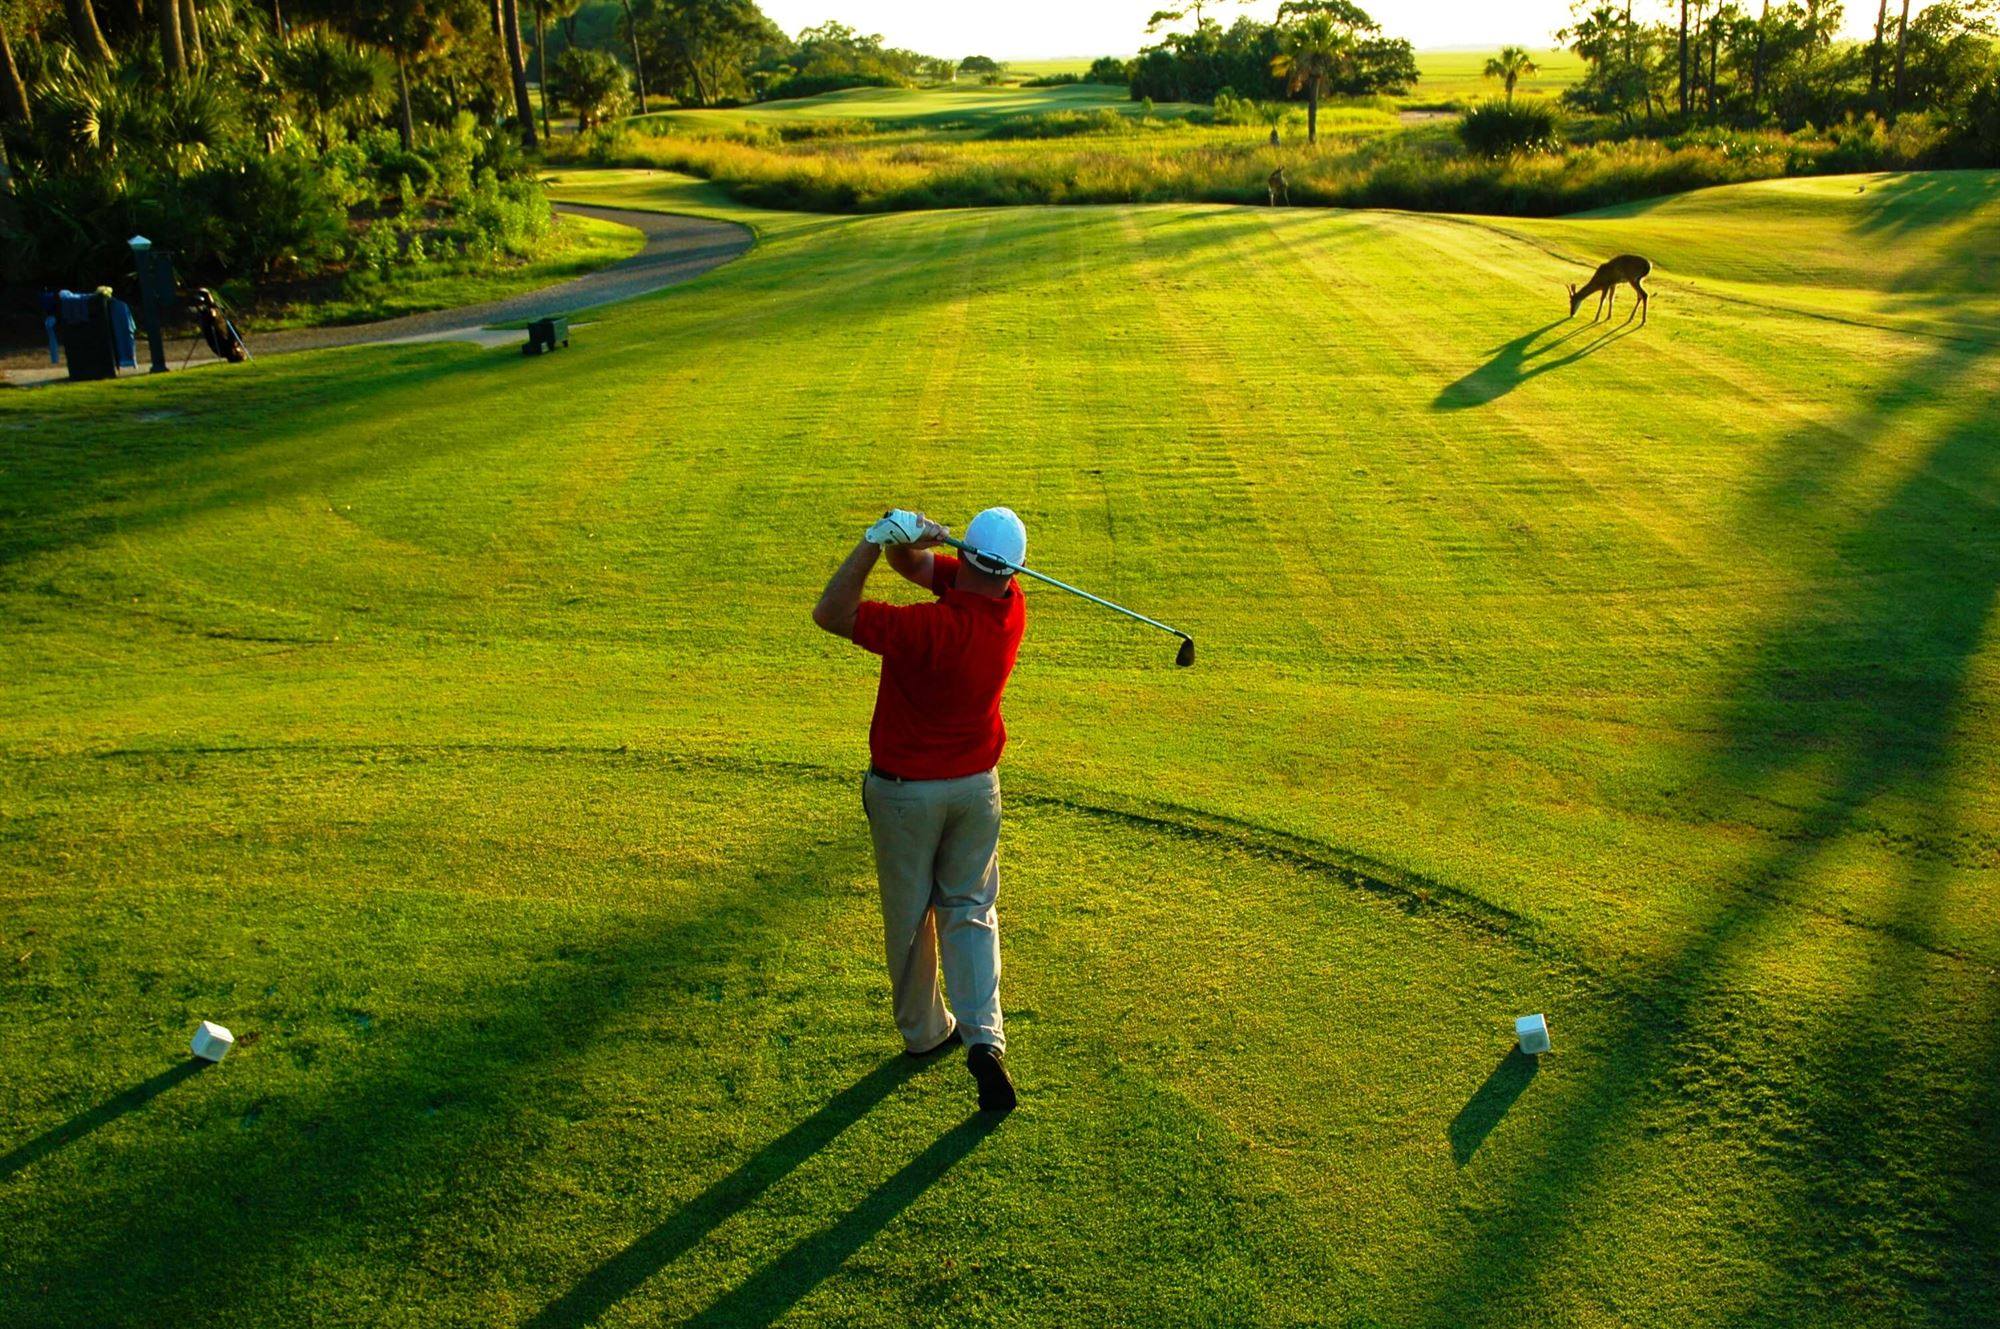 A golfer's swing at dusk